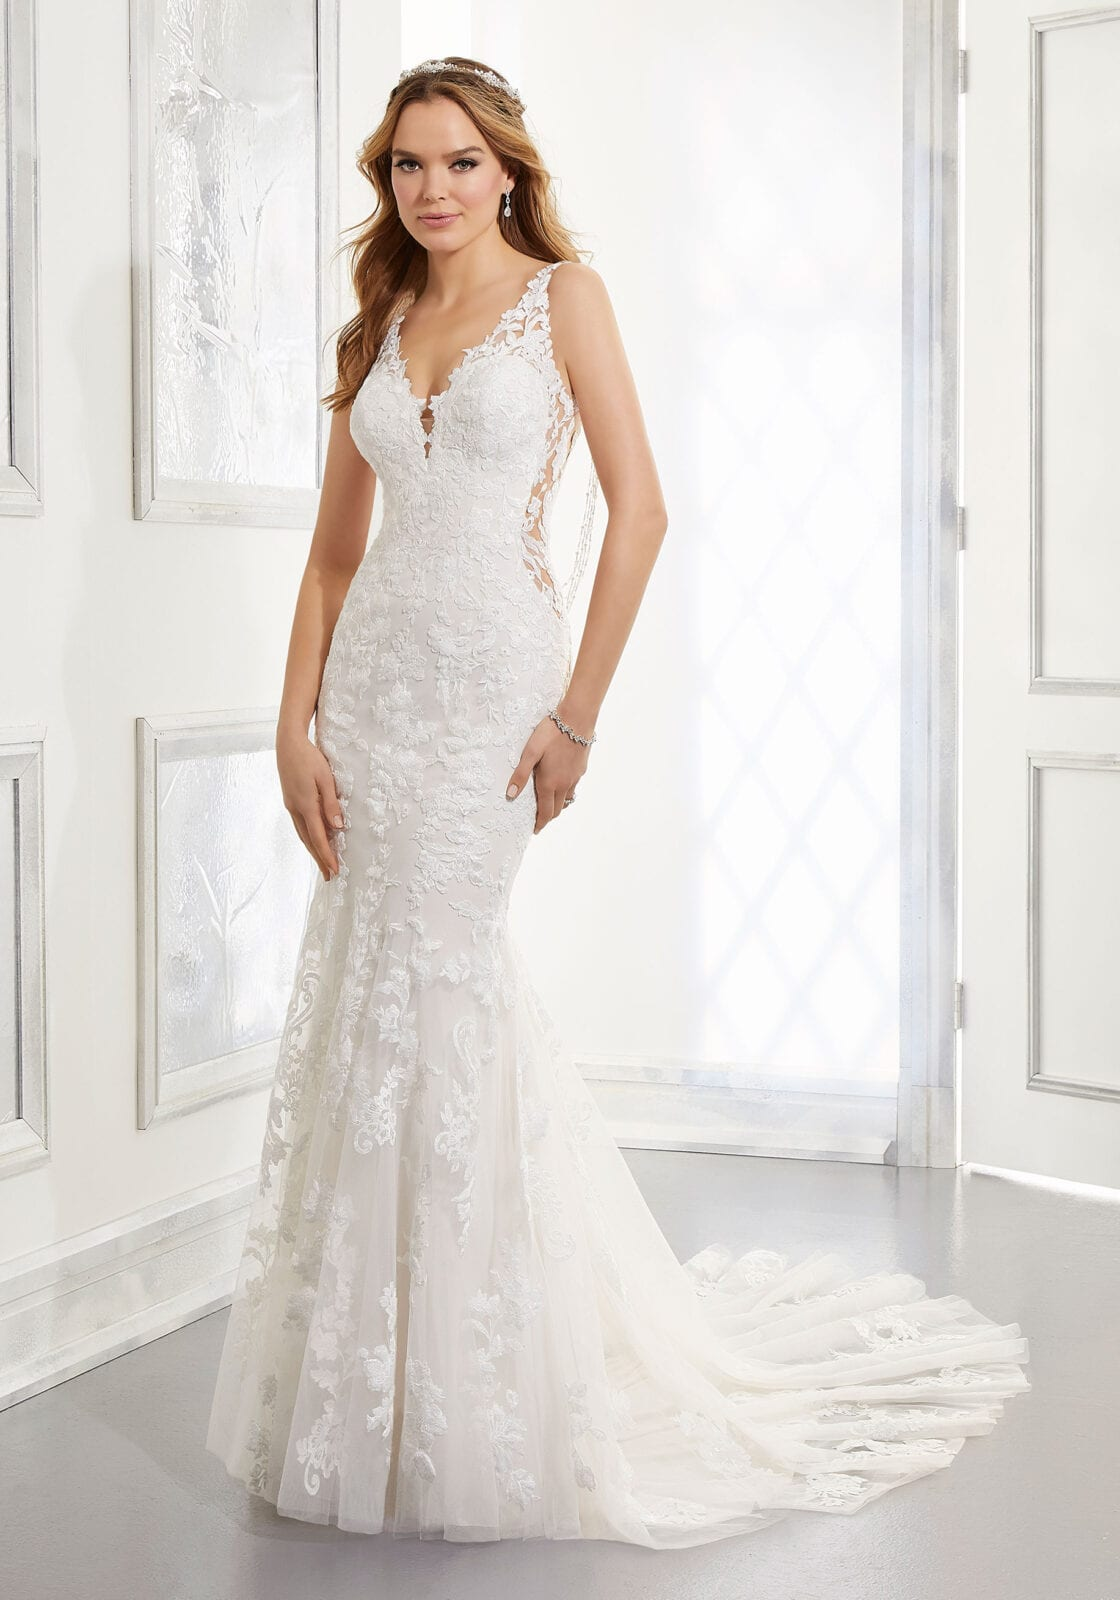 Form fitted wedding gown